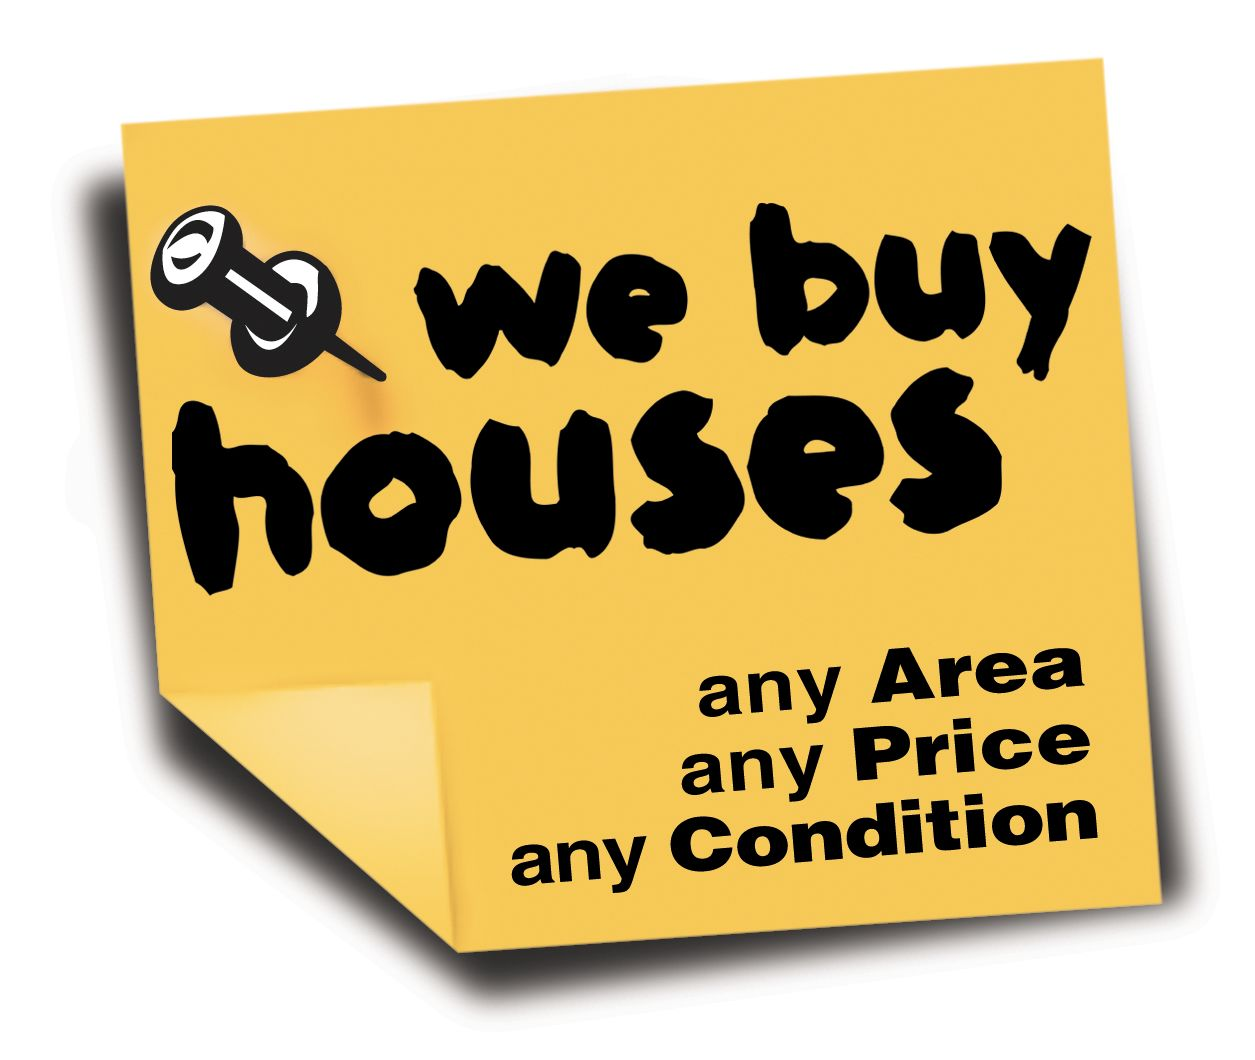 We Buy Houses Knoxville TN | We Buy Houses Knoxville TN